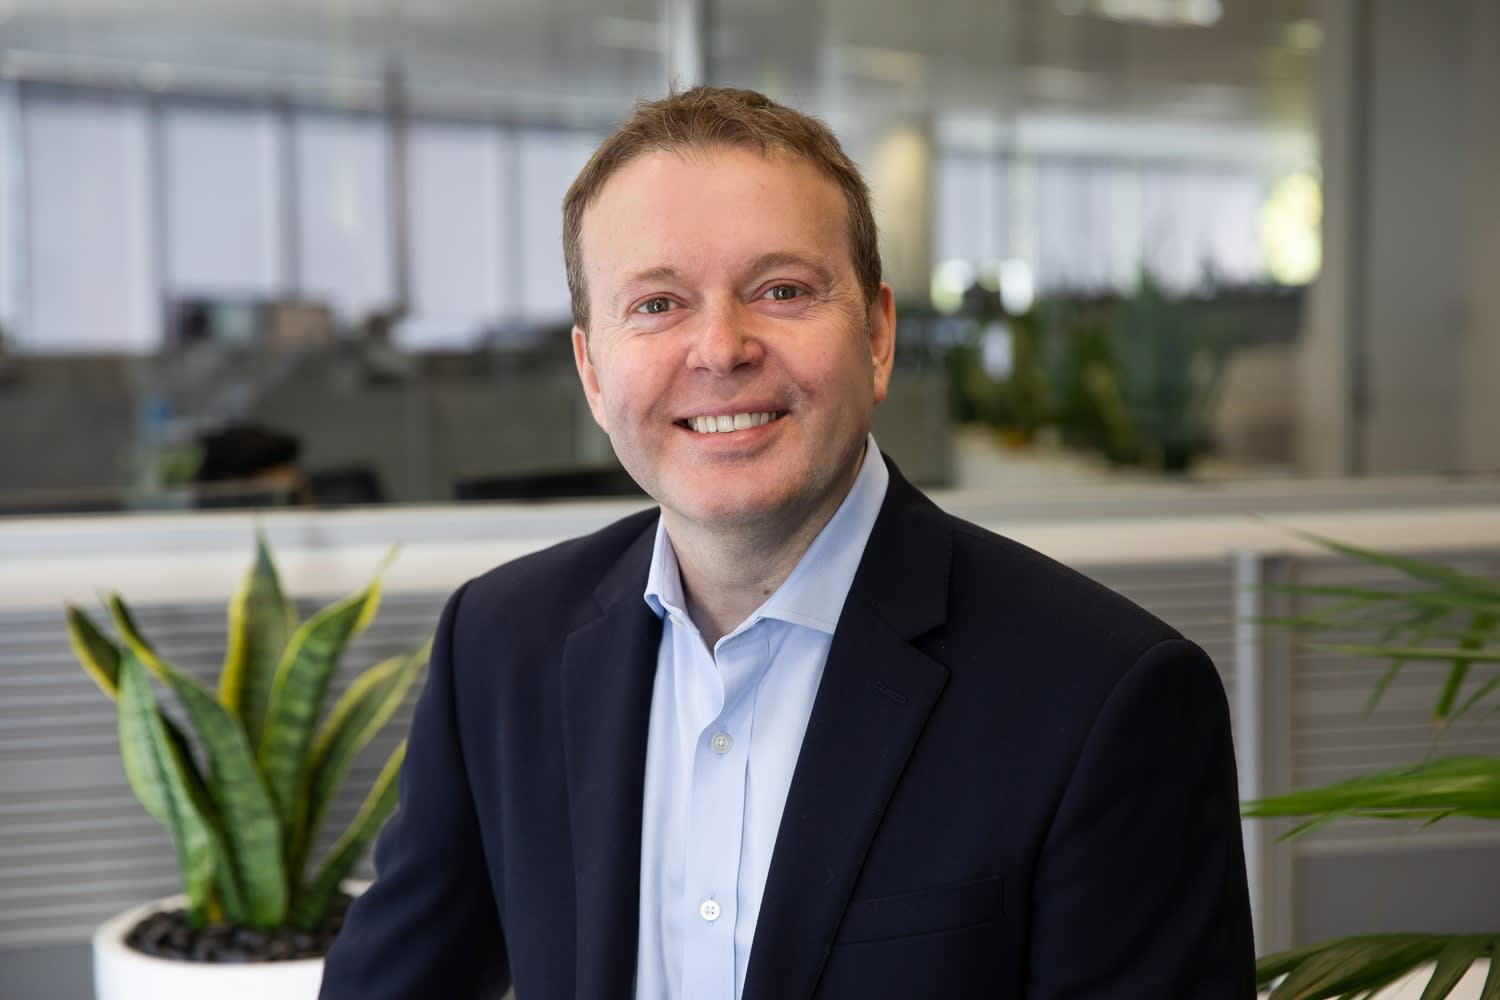 Benchmark Capital bolsters expansion plans with latest hire